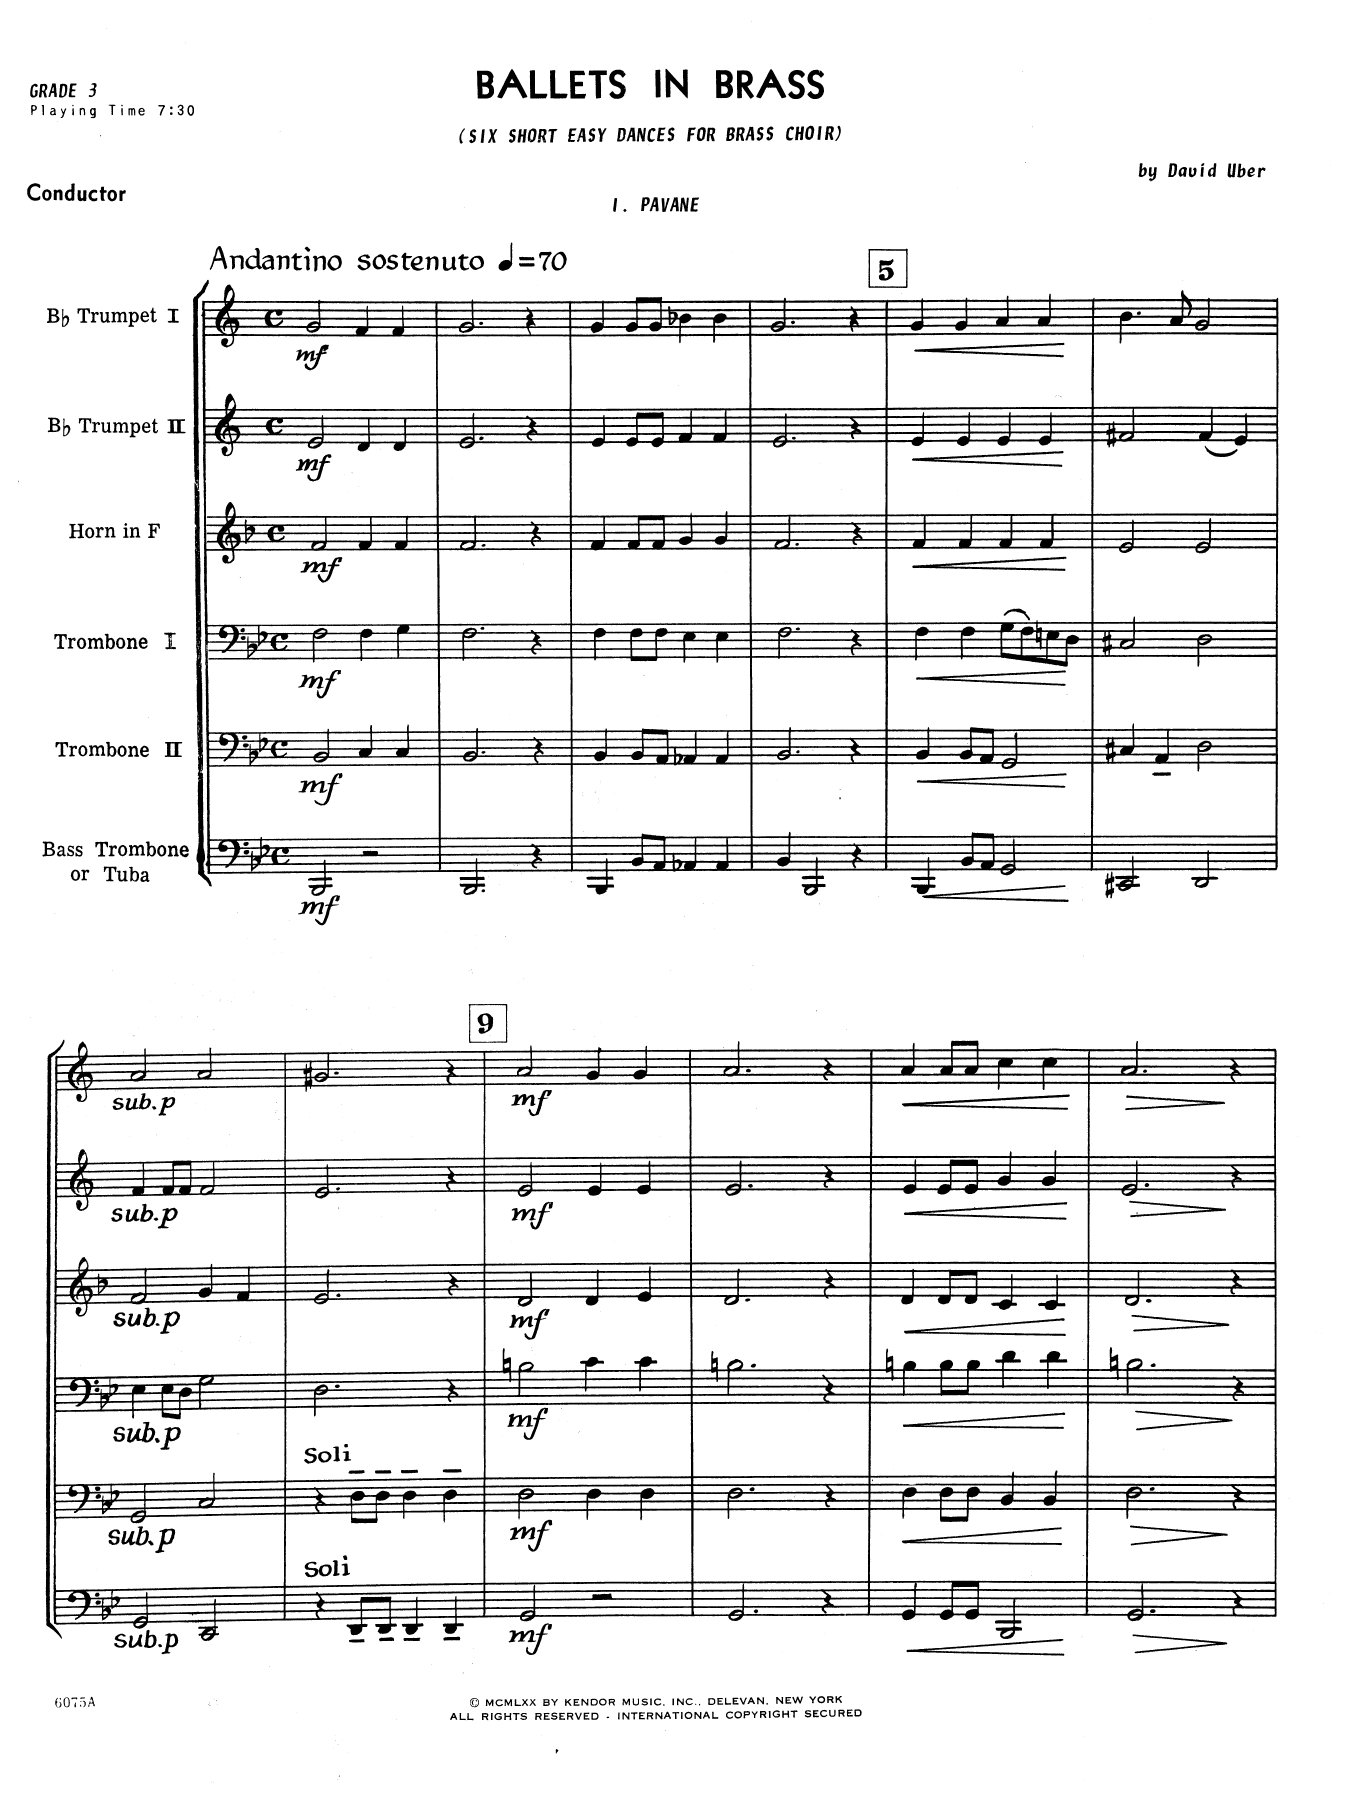 Ballets In Brass (Six Short Dances) (COMPLETE) sheet music for brass ensemble by David Uber. Score Image Preview.